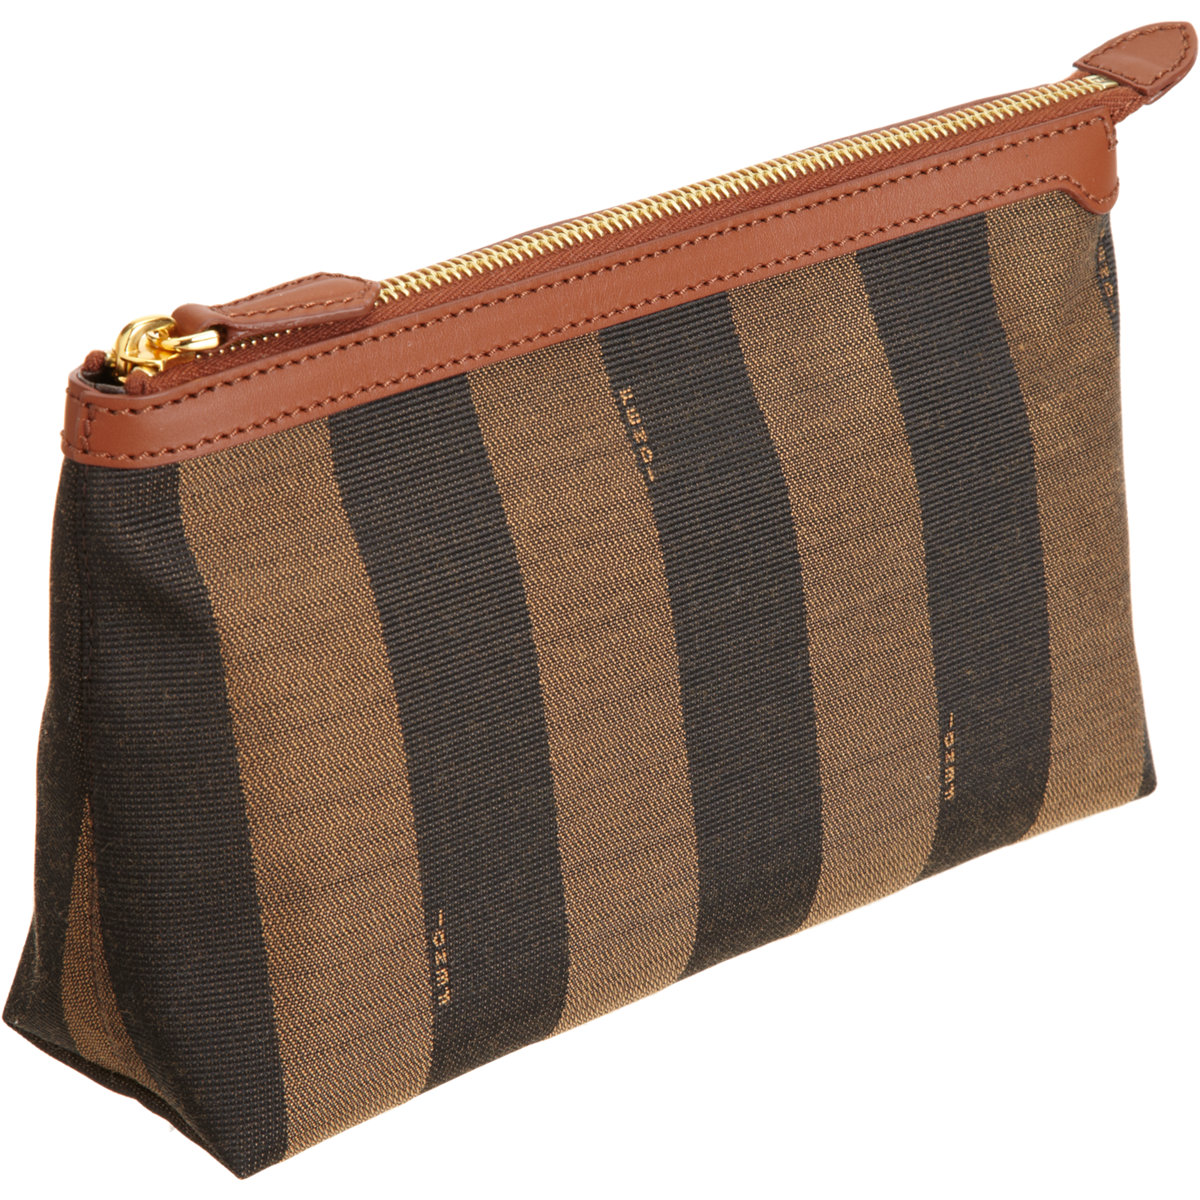 aff6015bf65 ... order fendi pequin large cosmetic bag in brown lyst 61bbf 1ba08